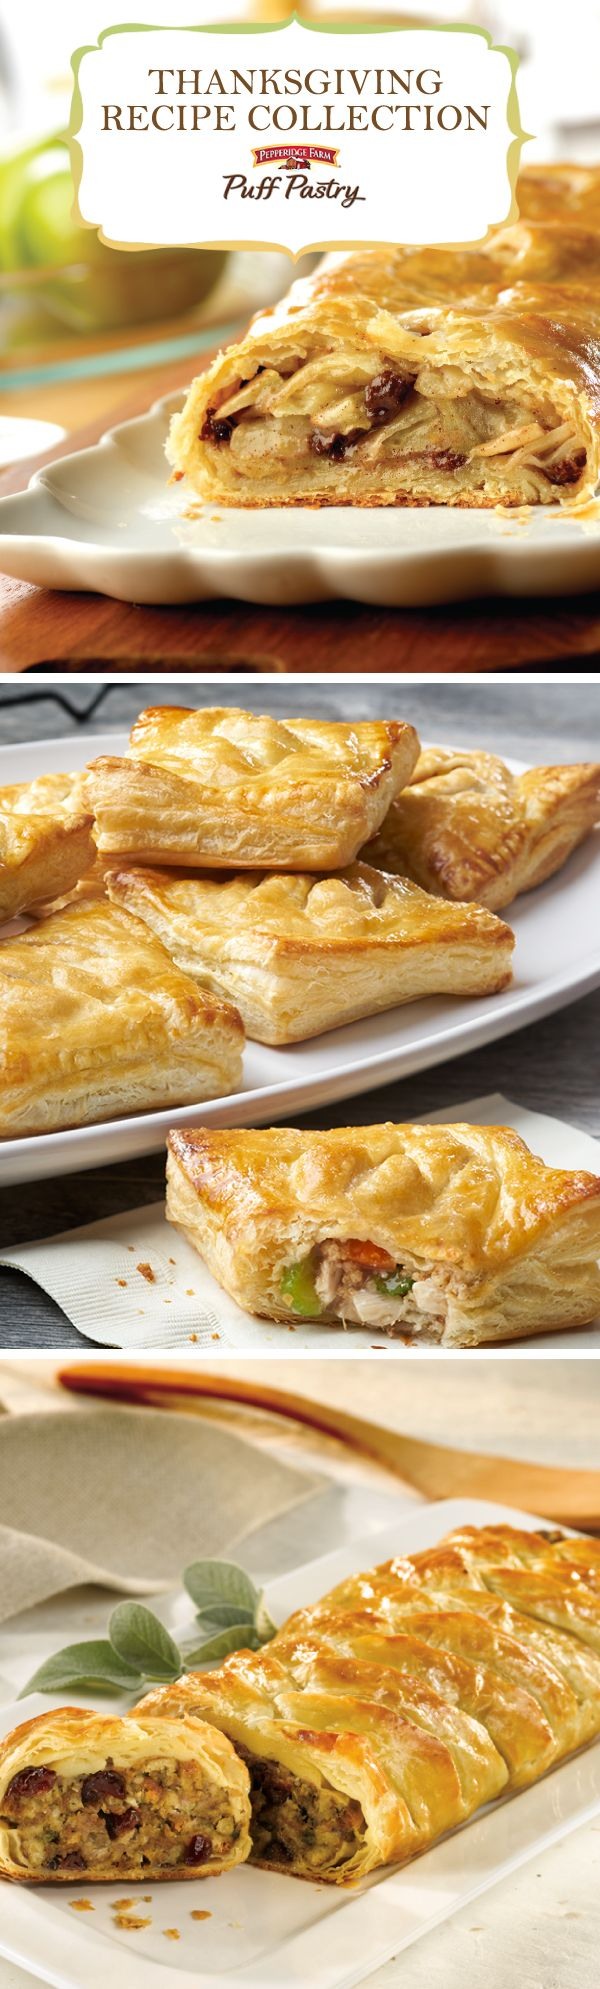 Pepperidge Farm Puff Pastry Thanksgiving Recipe Collection. From appetizers, side-dishes and desserts, to making the most of those fabulous leftovers, this recipe collection will inspire your Turkey Day celebrations. Impress guests with stuffing served in a golden Puff Pastry braid, or add excitement to the dessert table with Hazelnut Chocolate Caramel Blossoms. From traditional favorites to new inspiration, this list will help you plan your big feast.